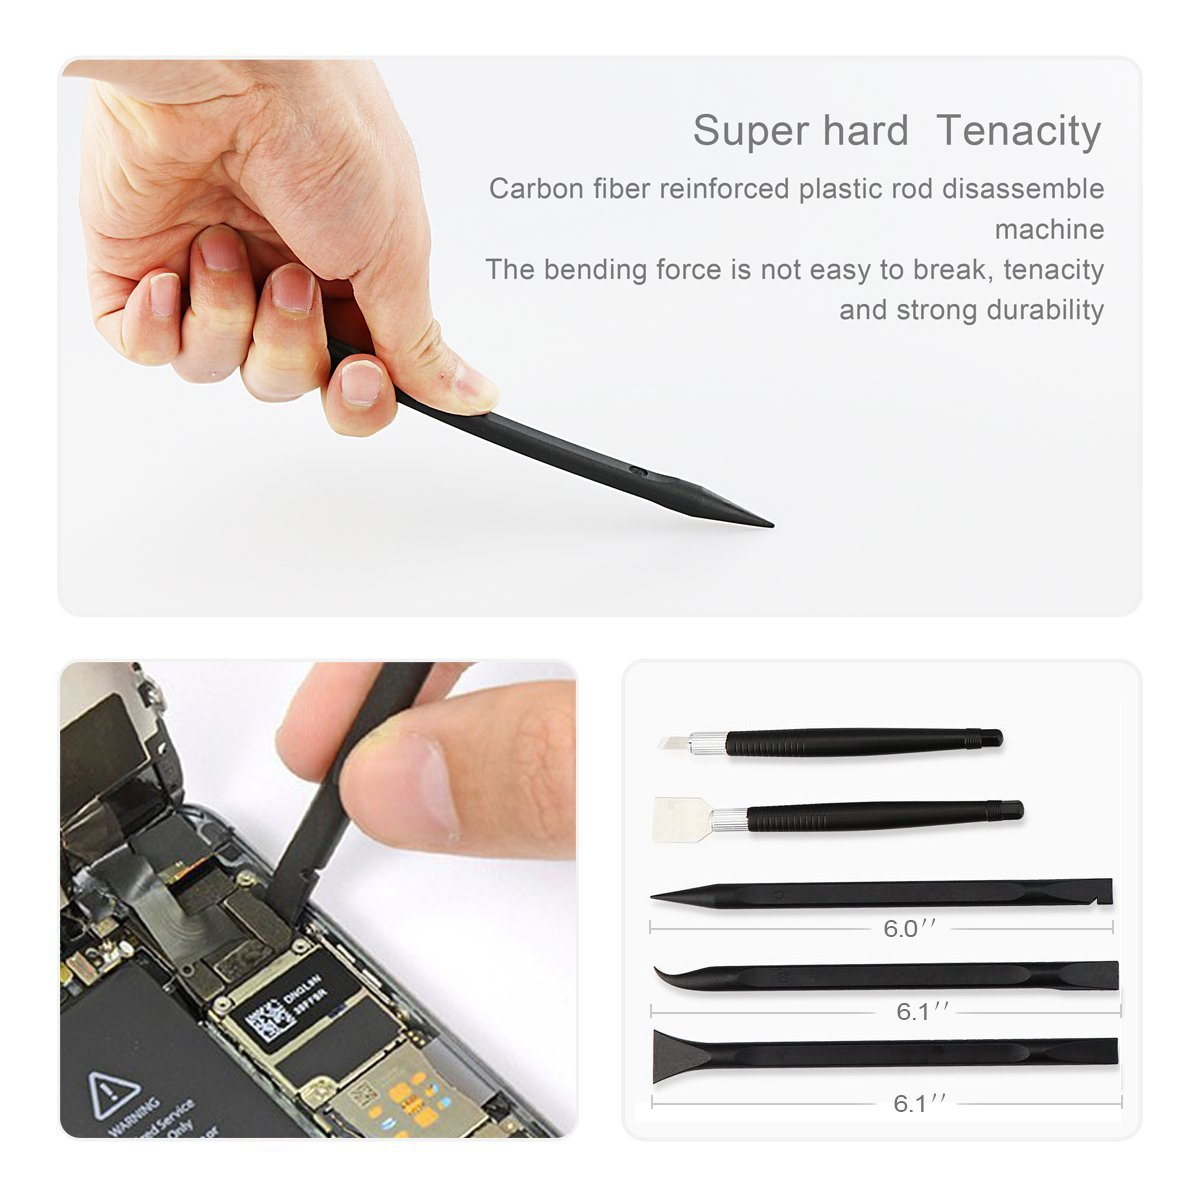 LCD Screen Opening Pliers Opening Repair Tool Kit with PCB Fixtures, ESD Tweezers, Opening Pry Tools, Screwdrivers, Scraper Knife and Carving Knife for cell phone and electronic products maintenance by XOOL (Image #7)